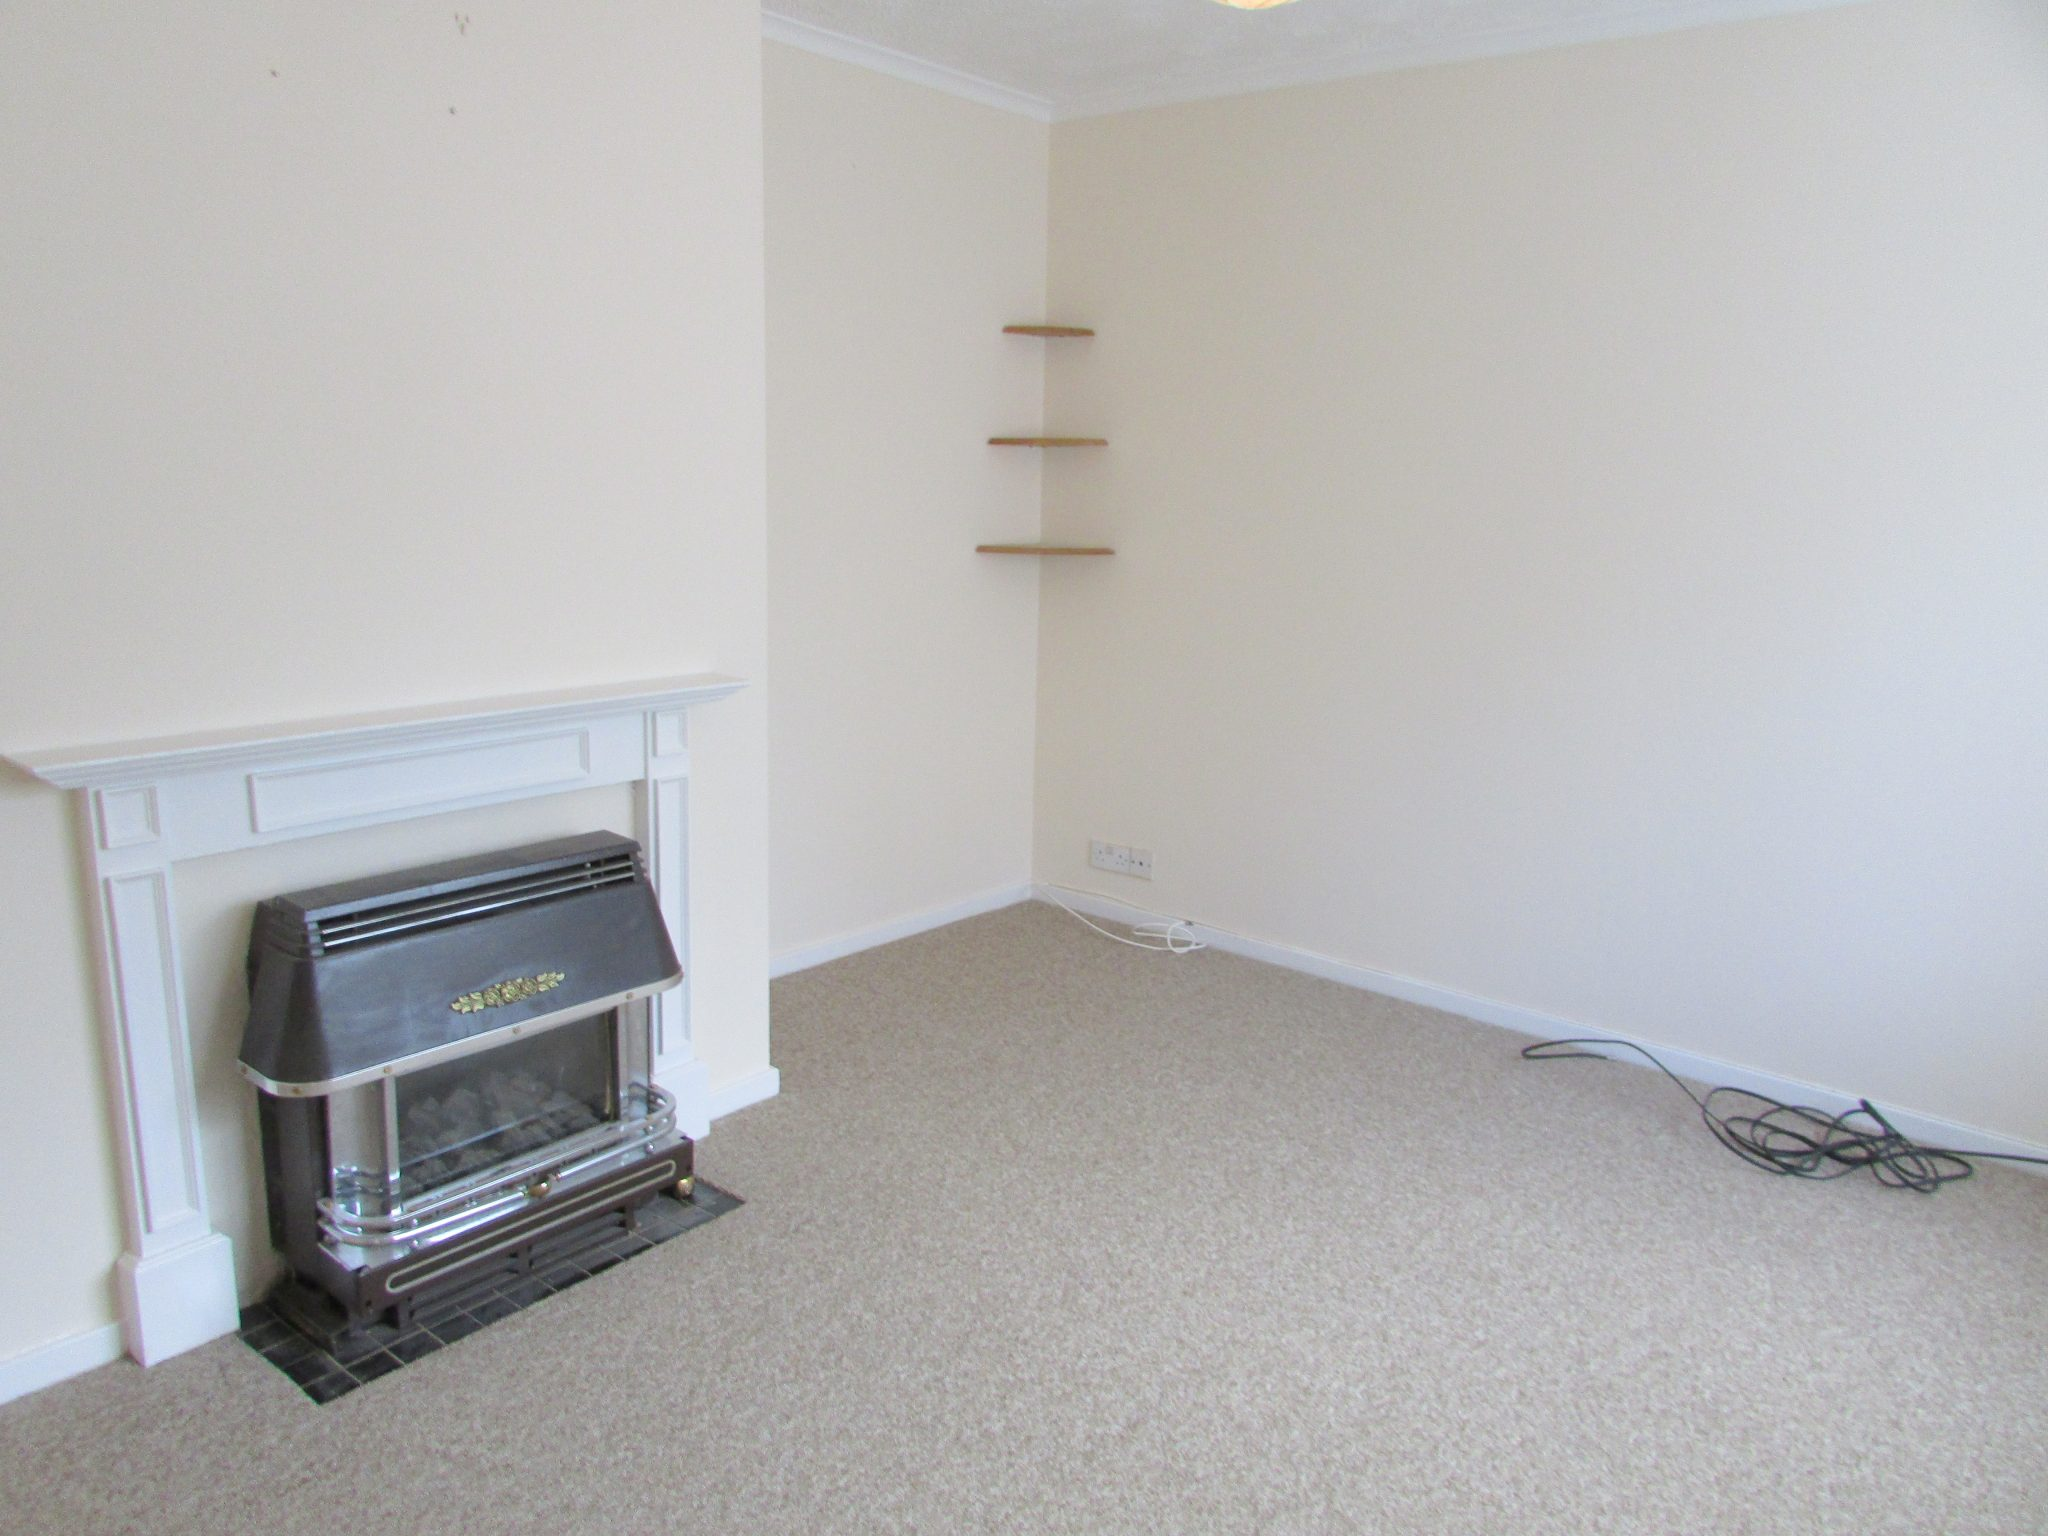 Property to rent, property to let, Warminster, West Street New, John Loftus Property Centre